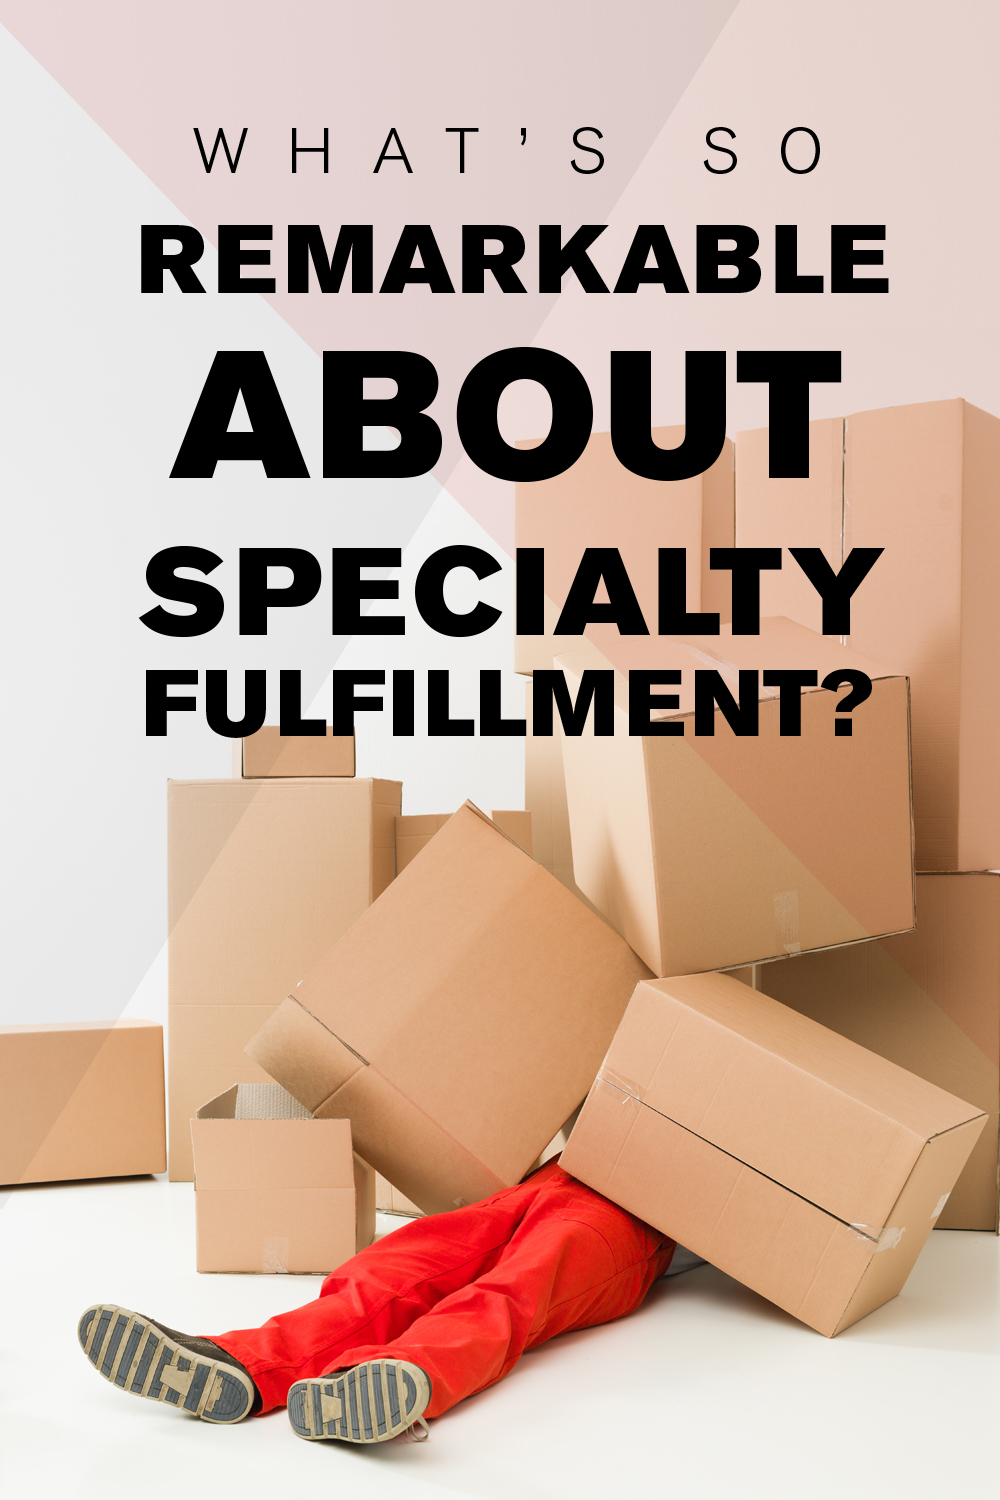 What's so remarkable about specialty fulfillment?